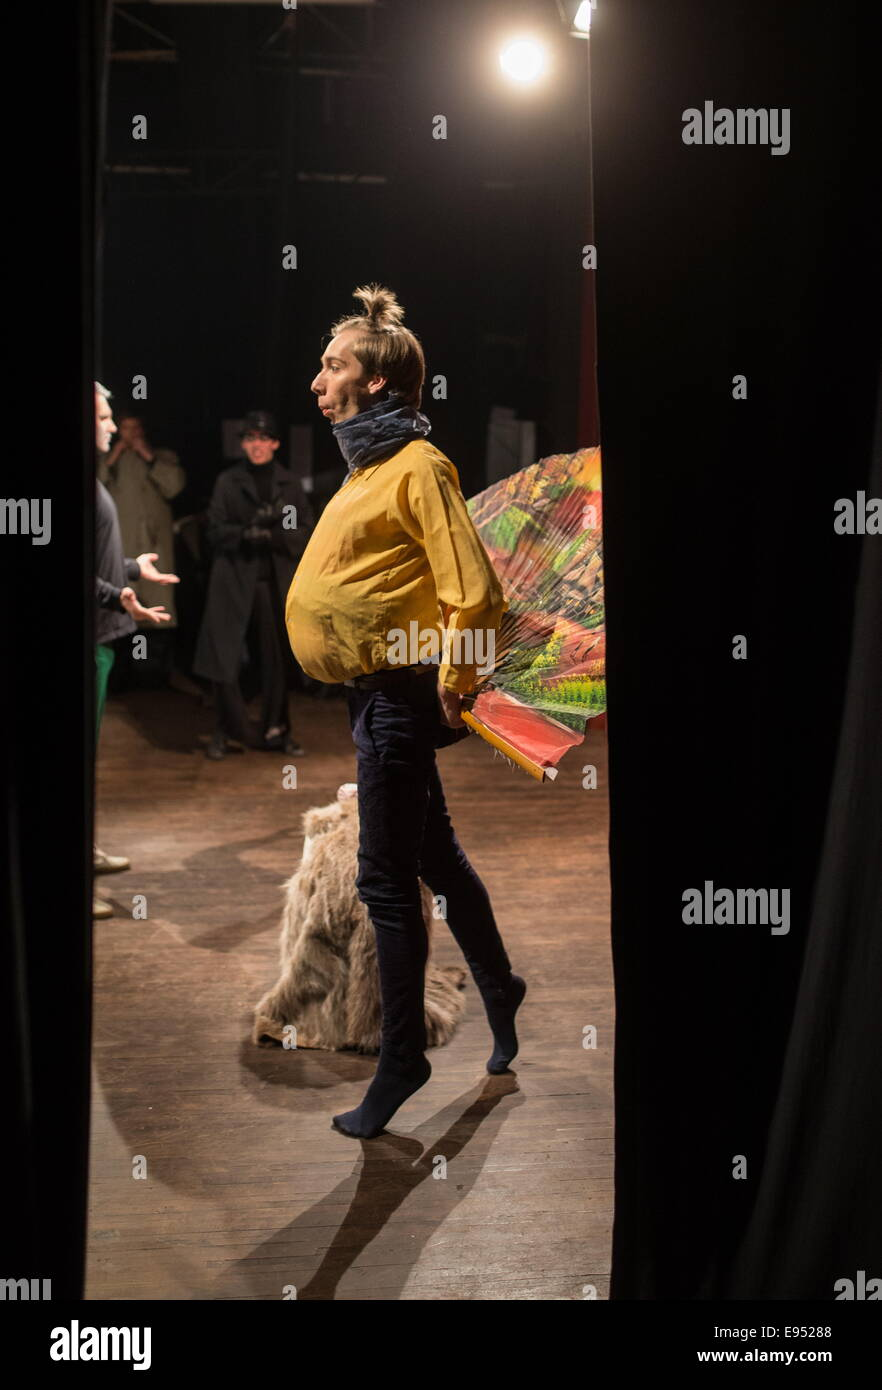 Moscow, Russia. 16th Oct, 2014. A student acting during a play rehearsal at the Boris Shchukin Theatre Institute. - Stock Image